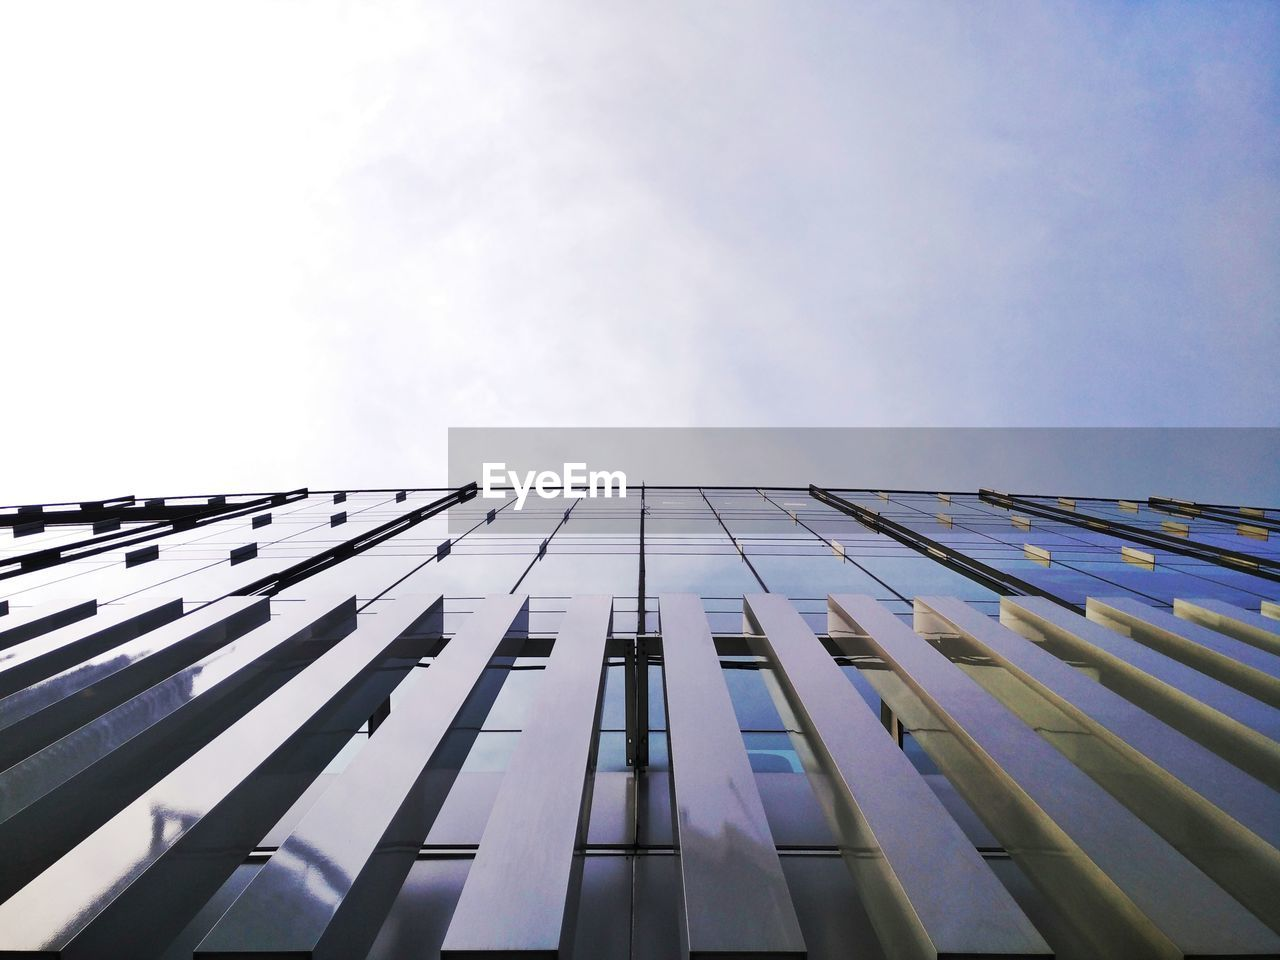 low angle view, architecture, day, built structure, sky, outdoors, no people, building exterior, modern